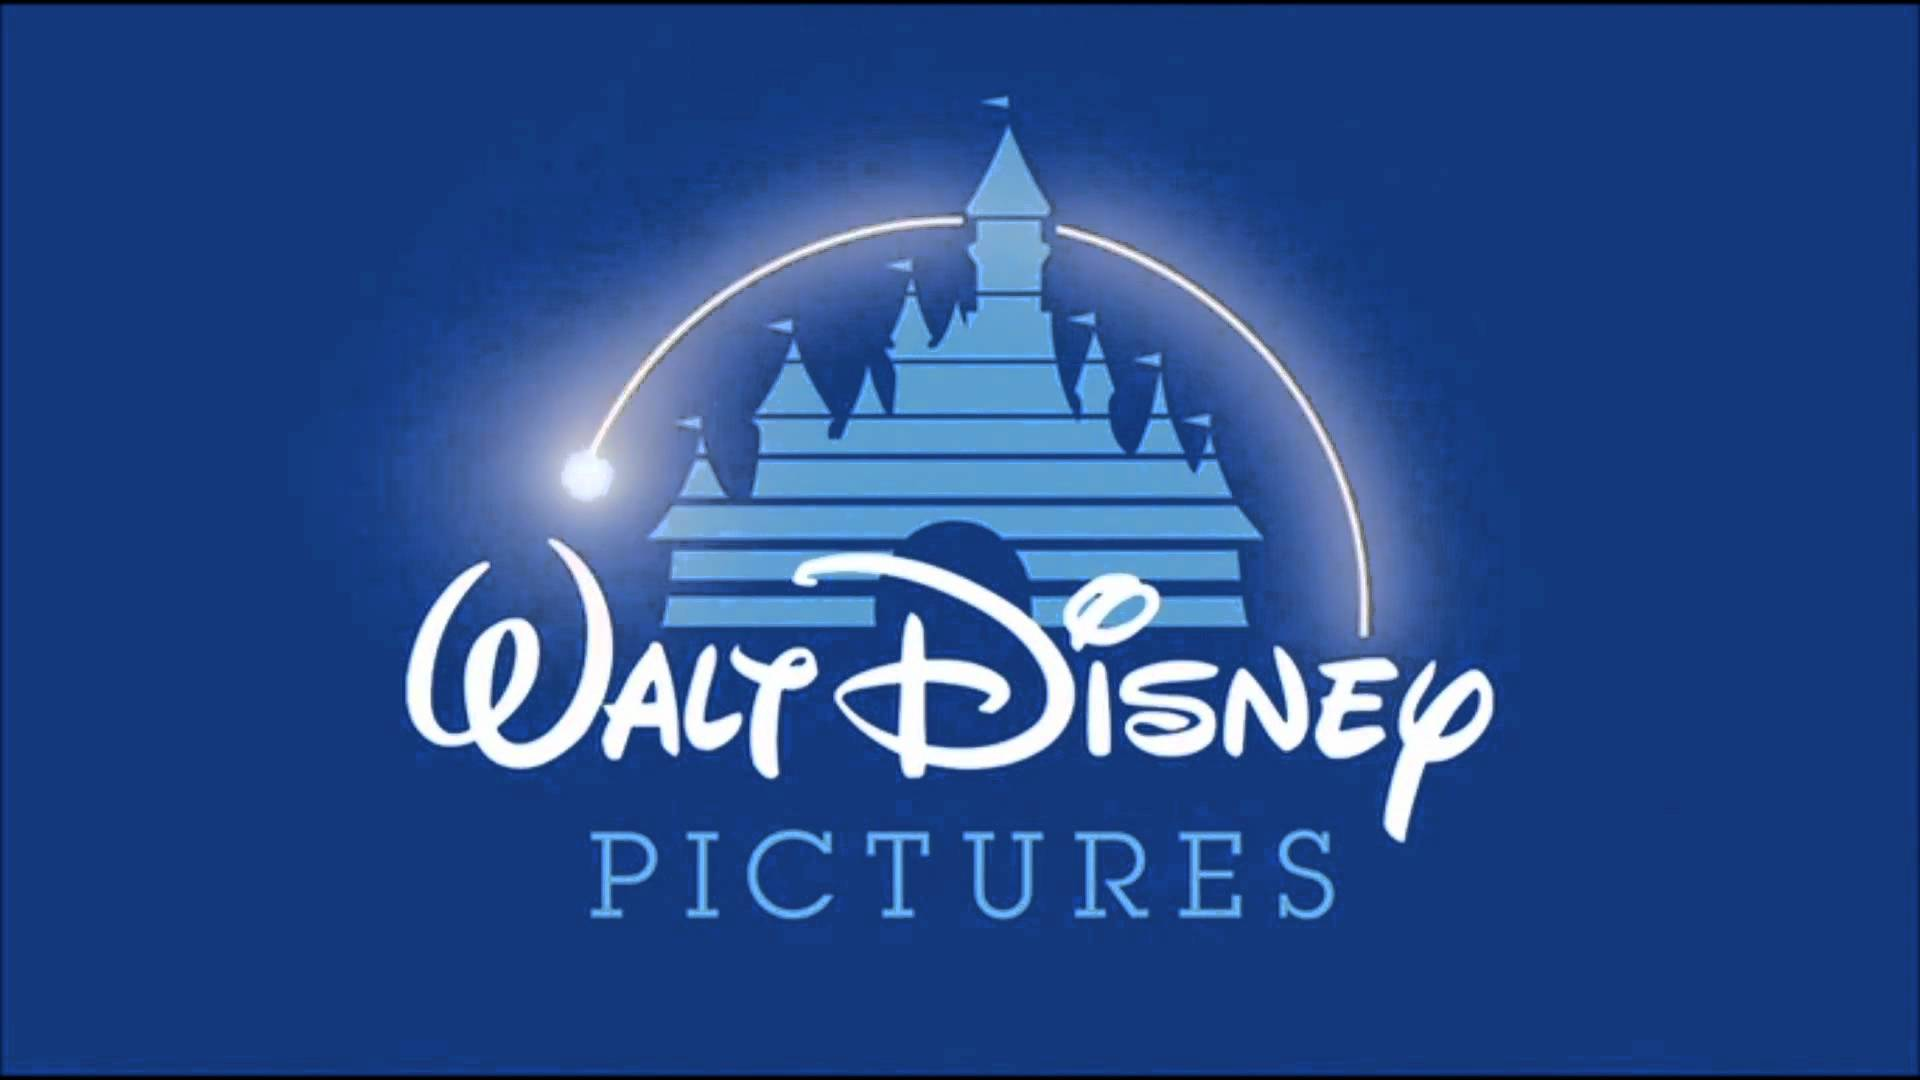 Disney Logo Wallpapers 1920x1080